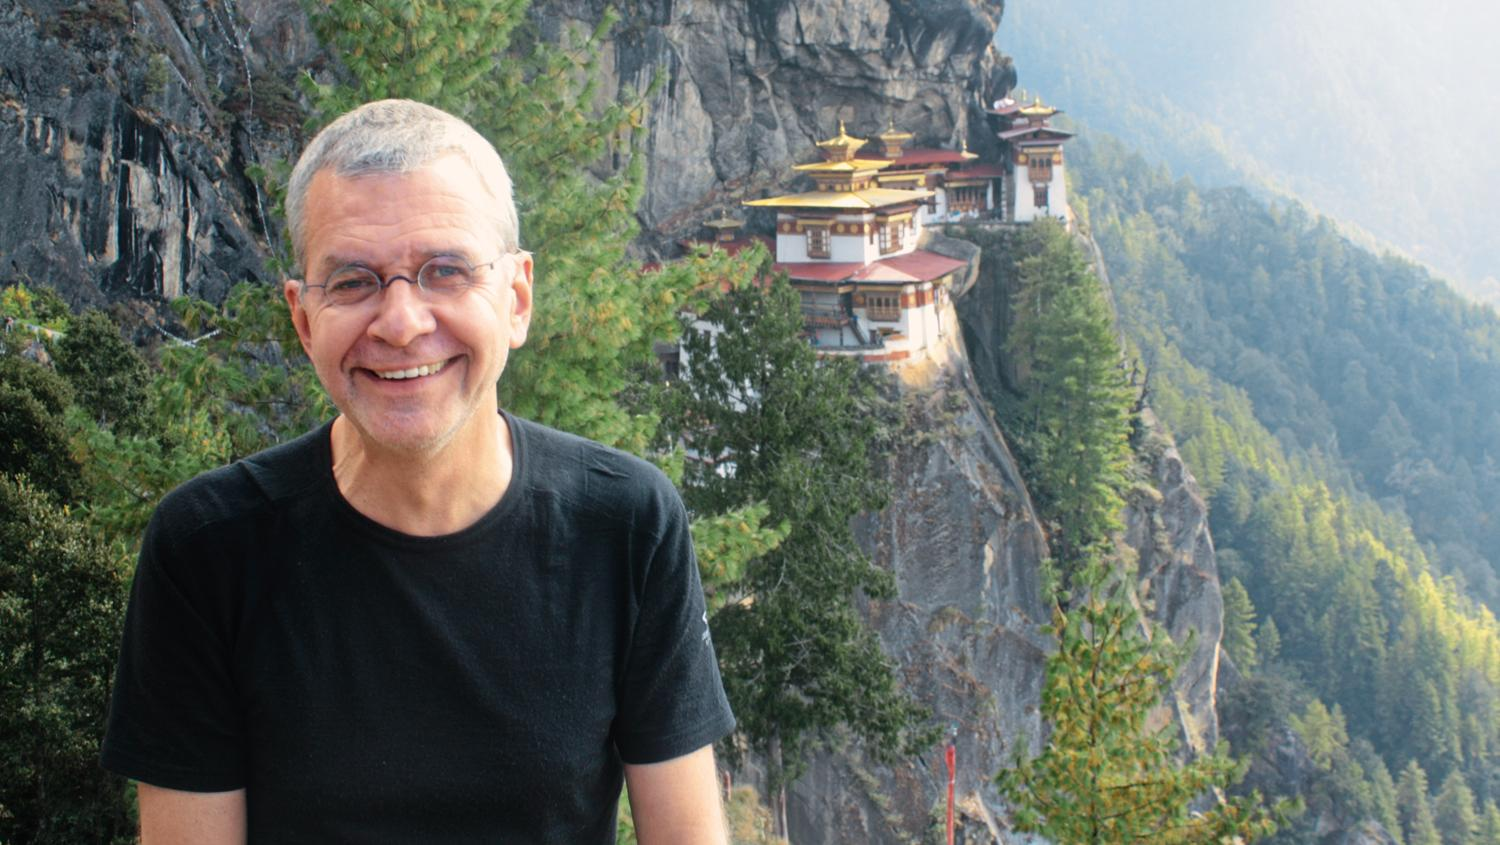 Prof. Martin Lohmann has researched the German travel market for many years.